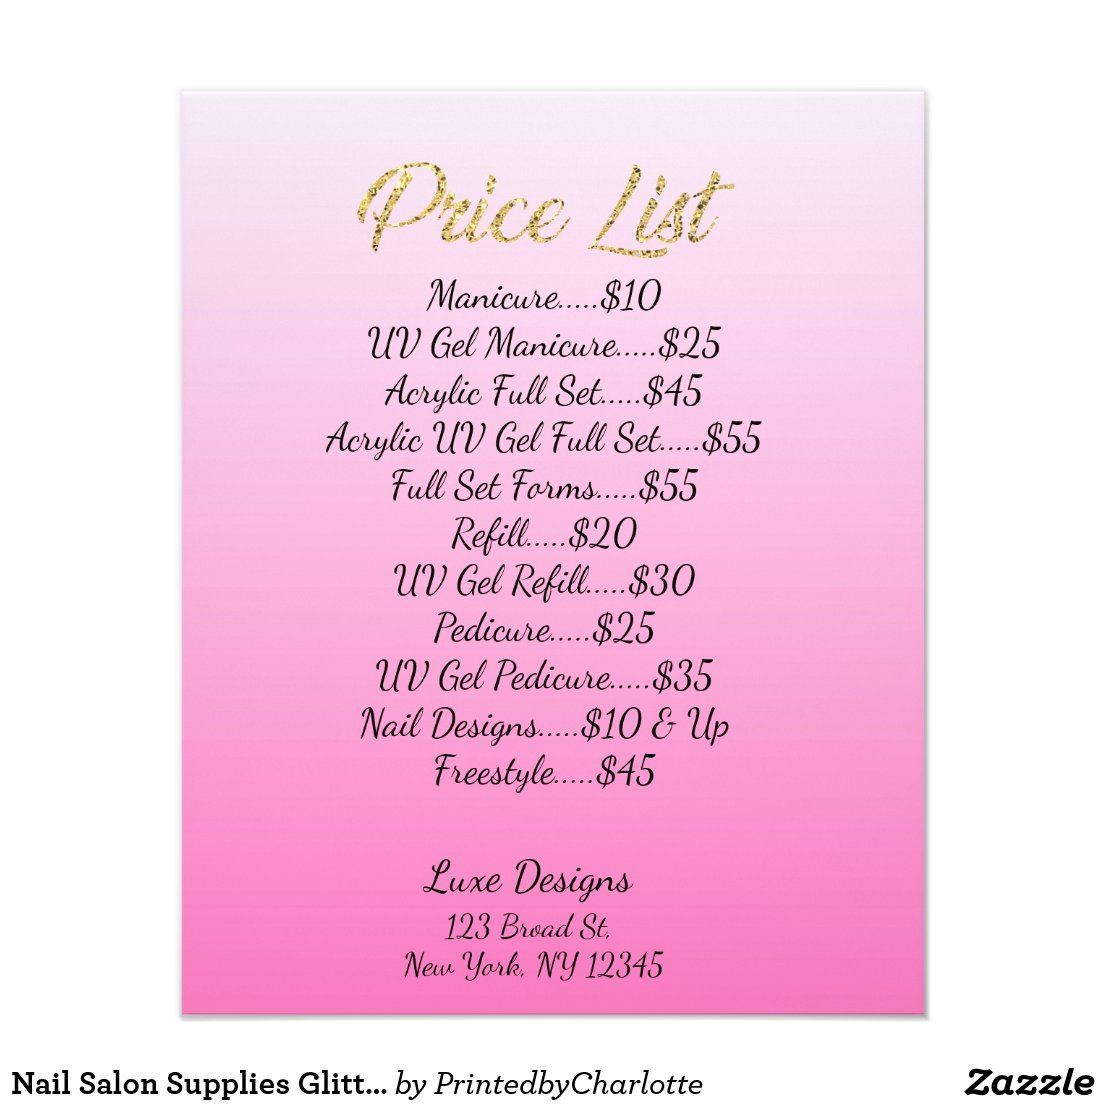 Nail Salon Supplies Glitter Drips Price List Flyer